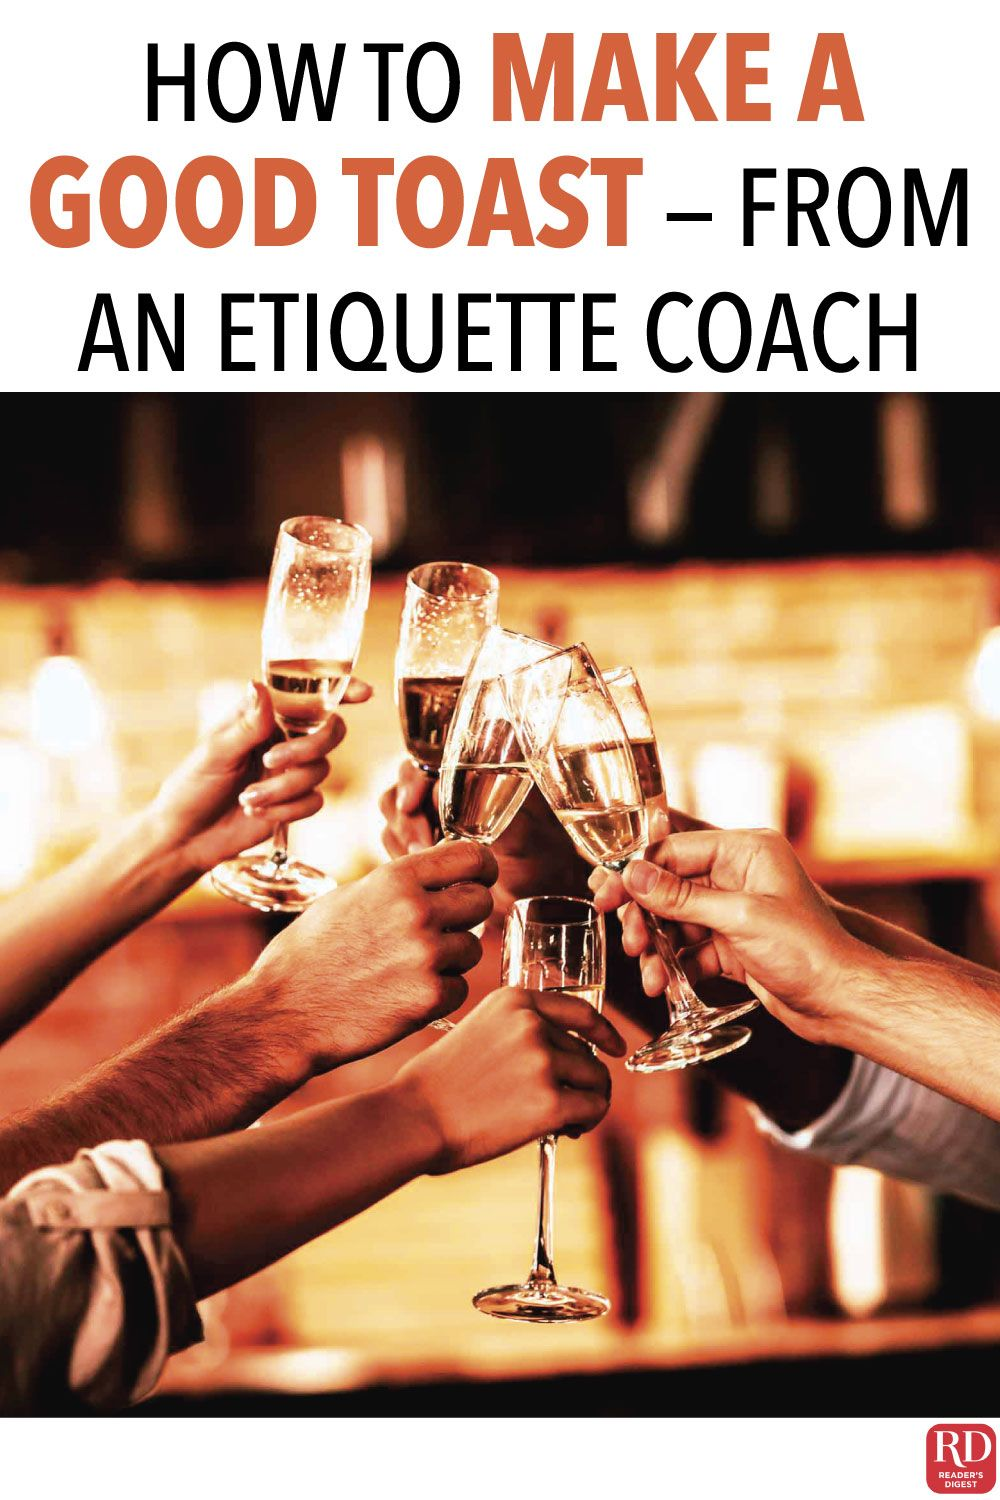 How to Make a Good Toast—From an Etiquette Coach in 2020